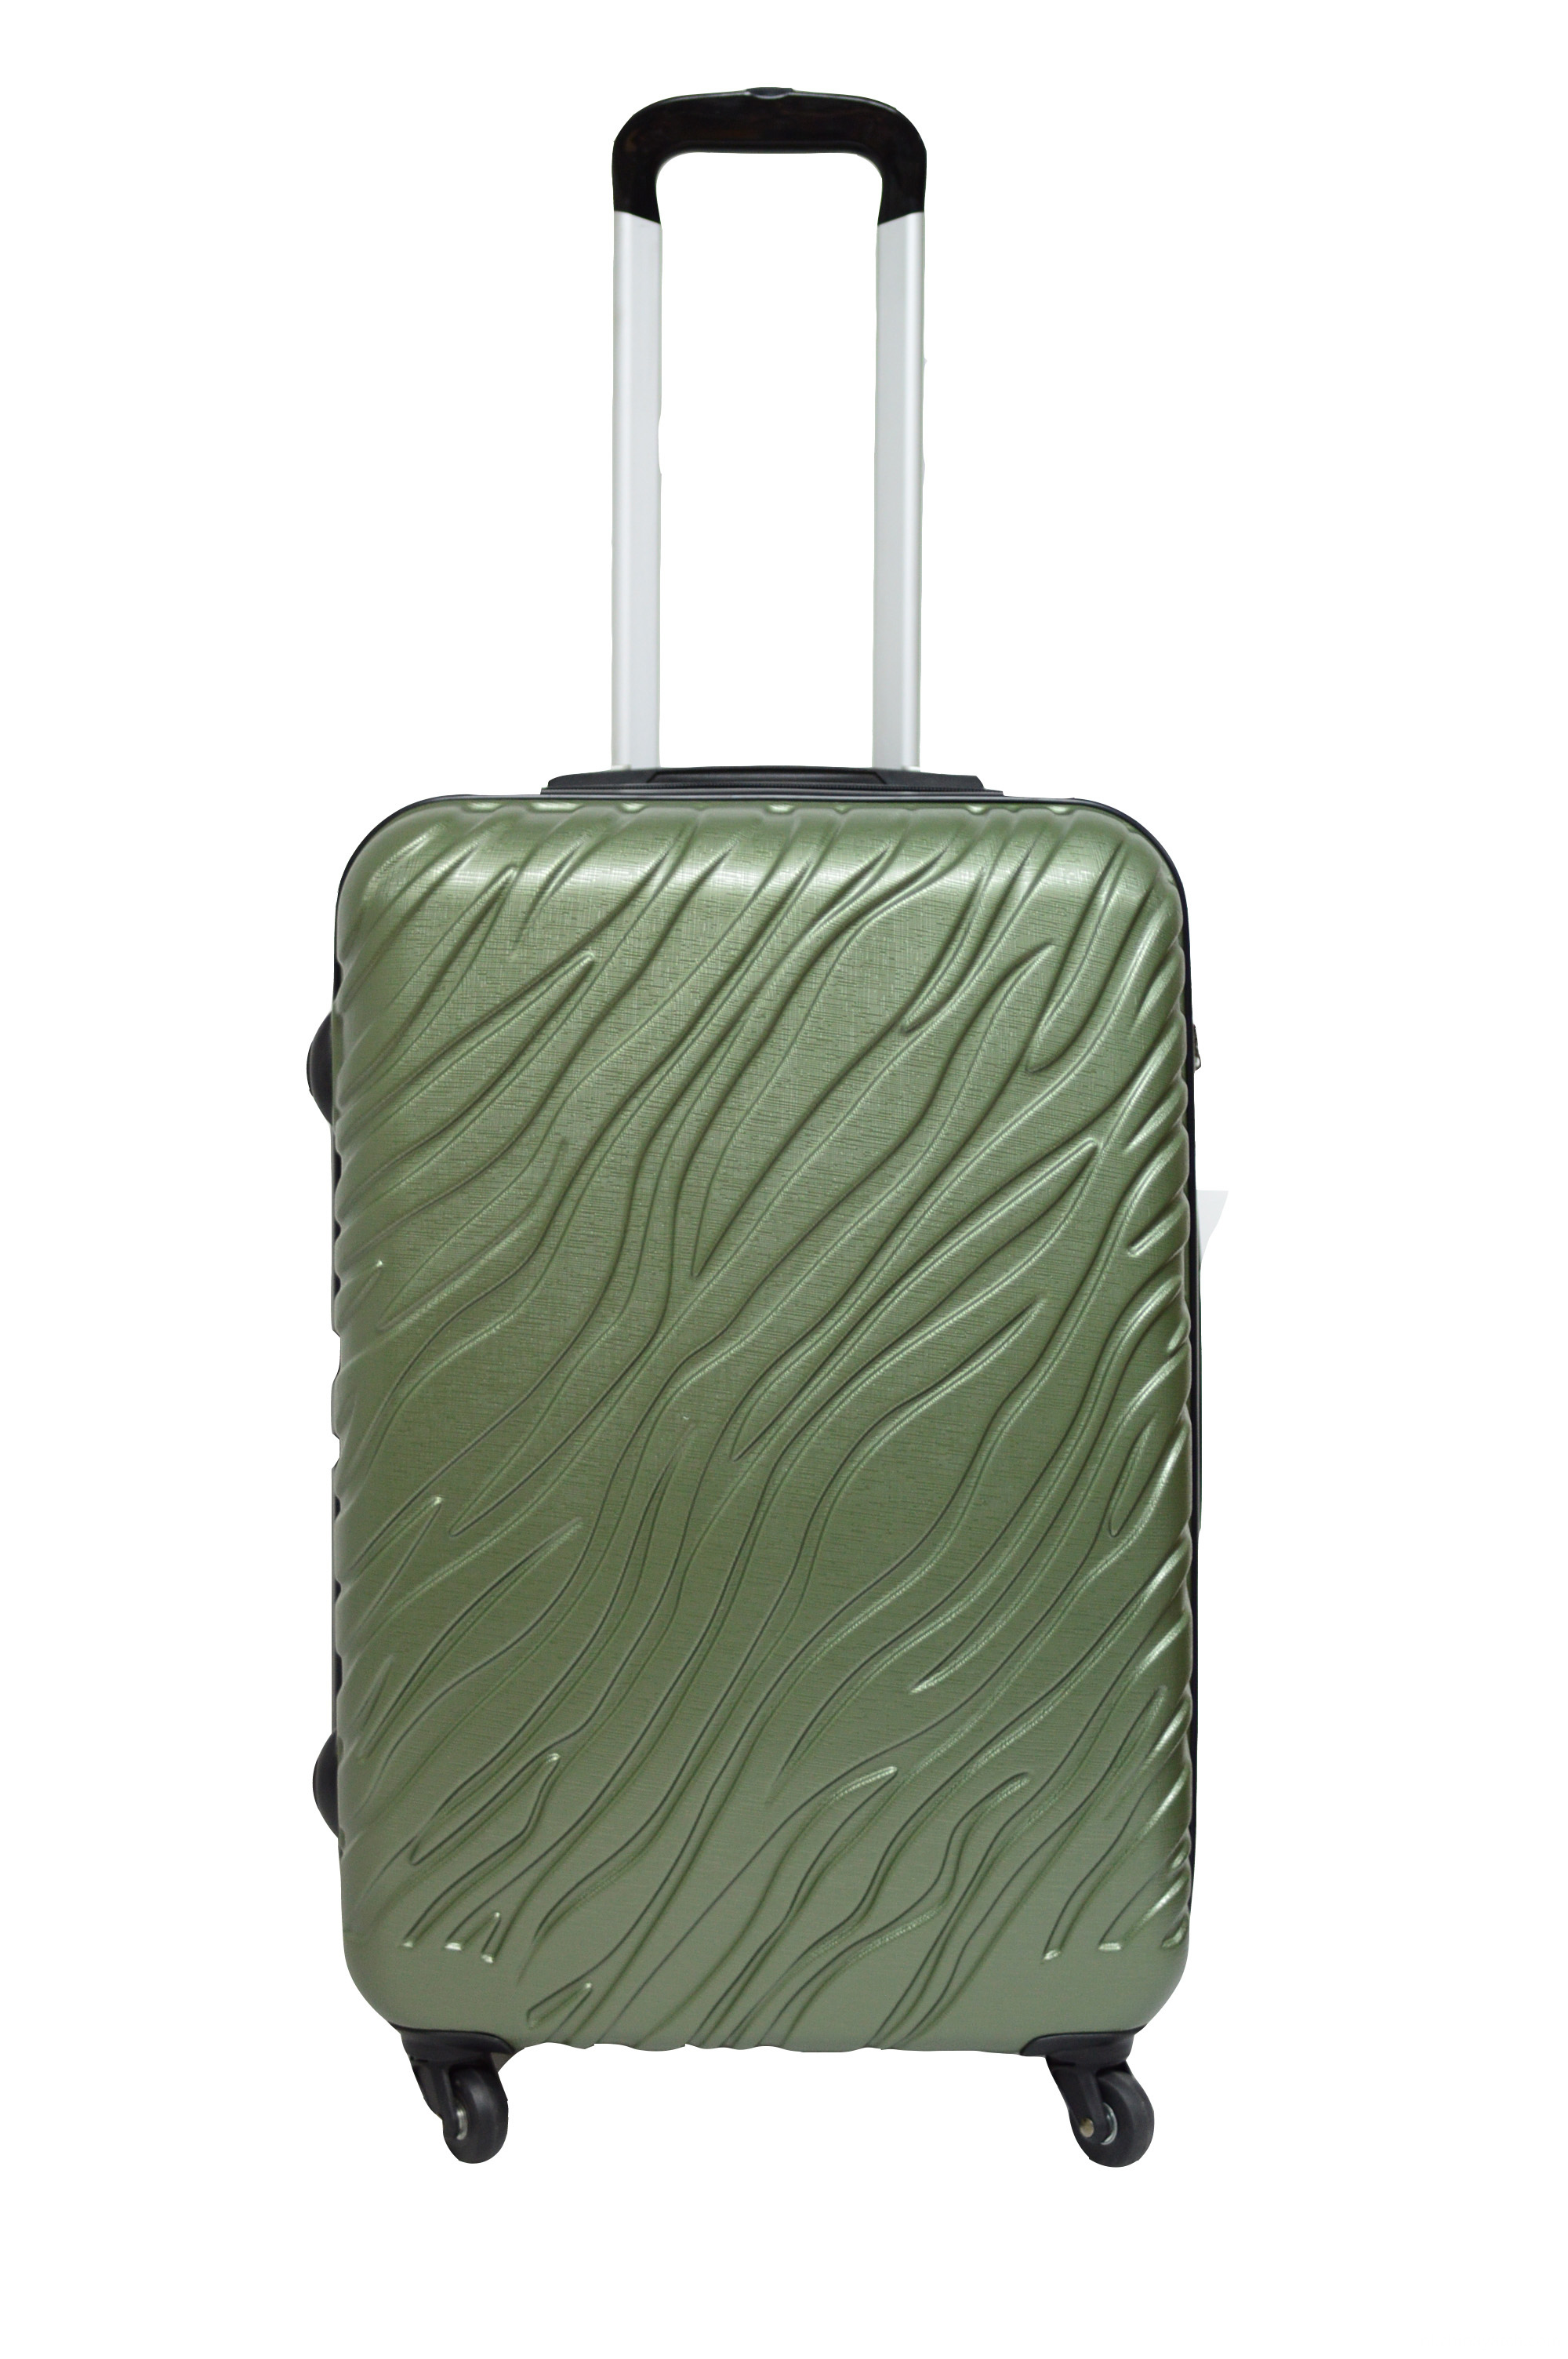 ABS Trolley Case